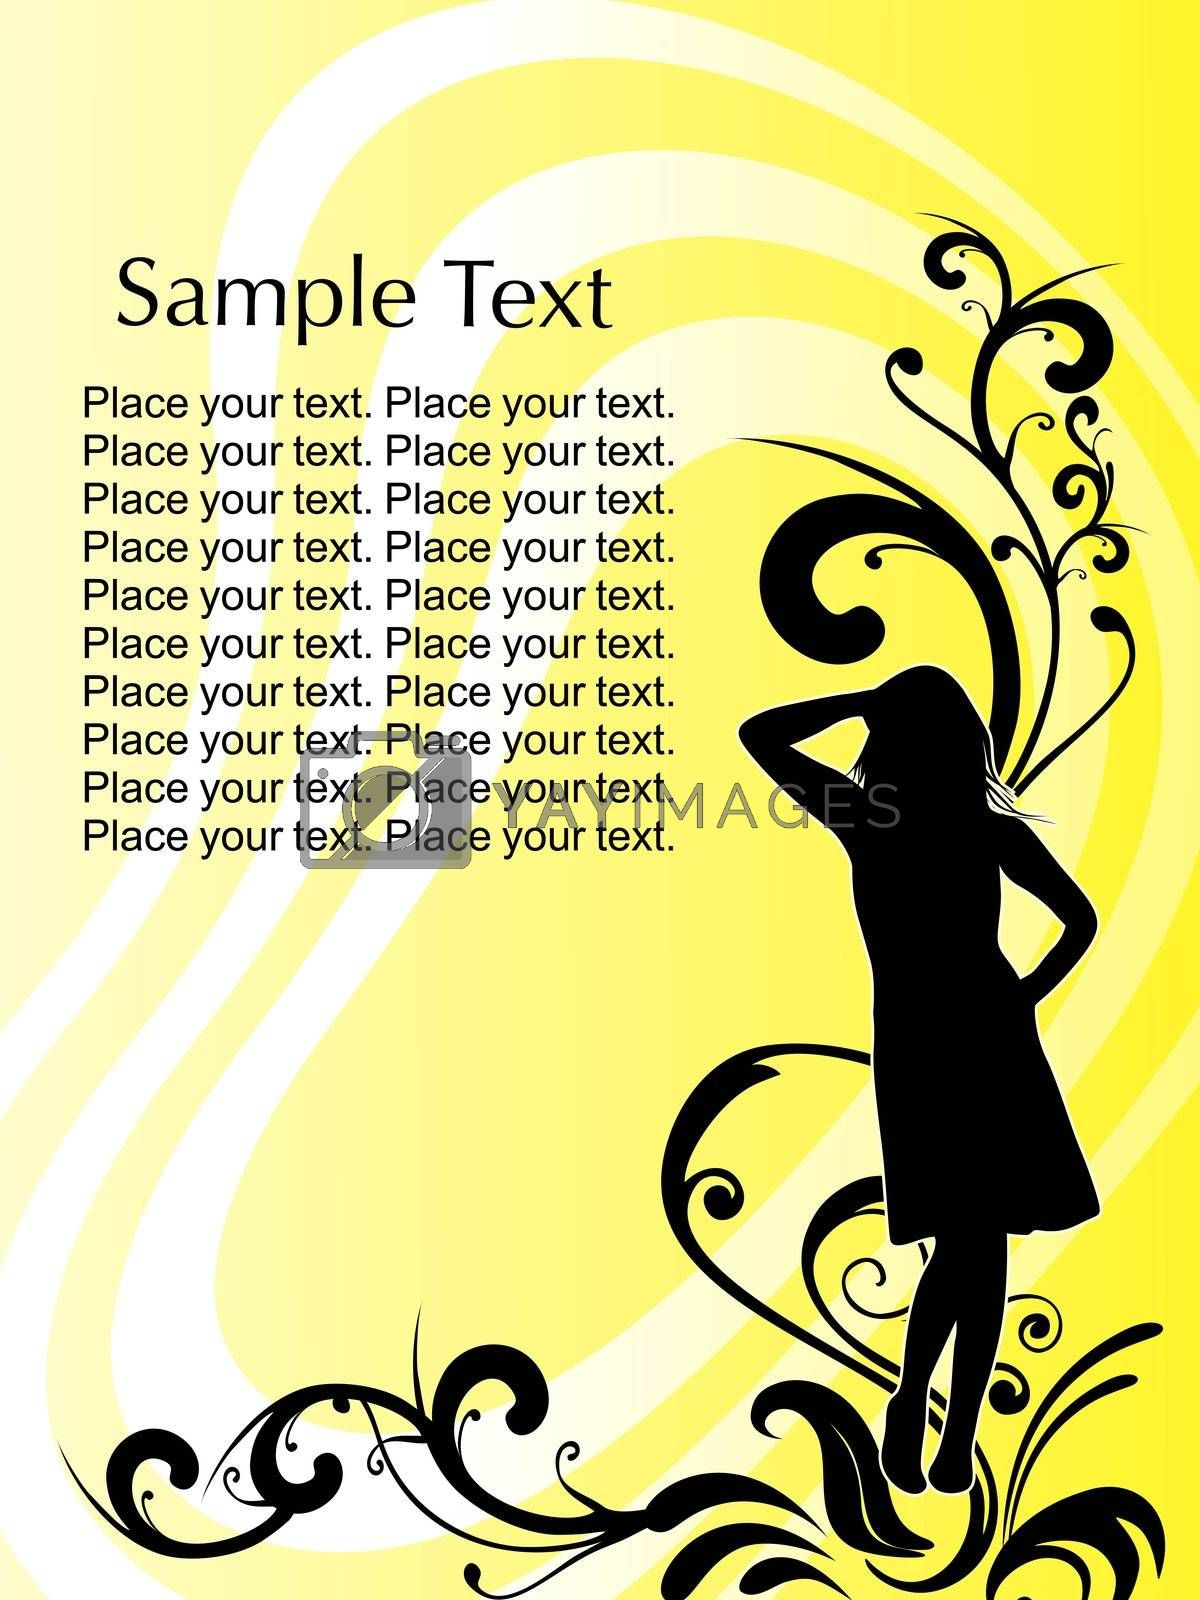 woman's silhouette on floral background vector illustration by aispl